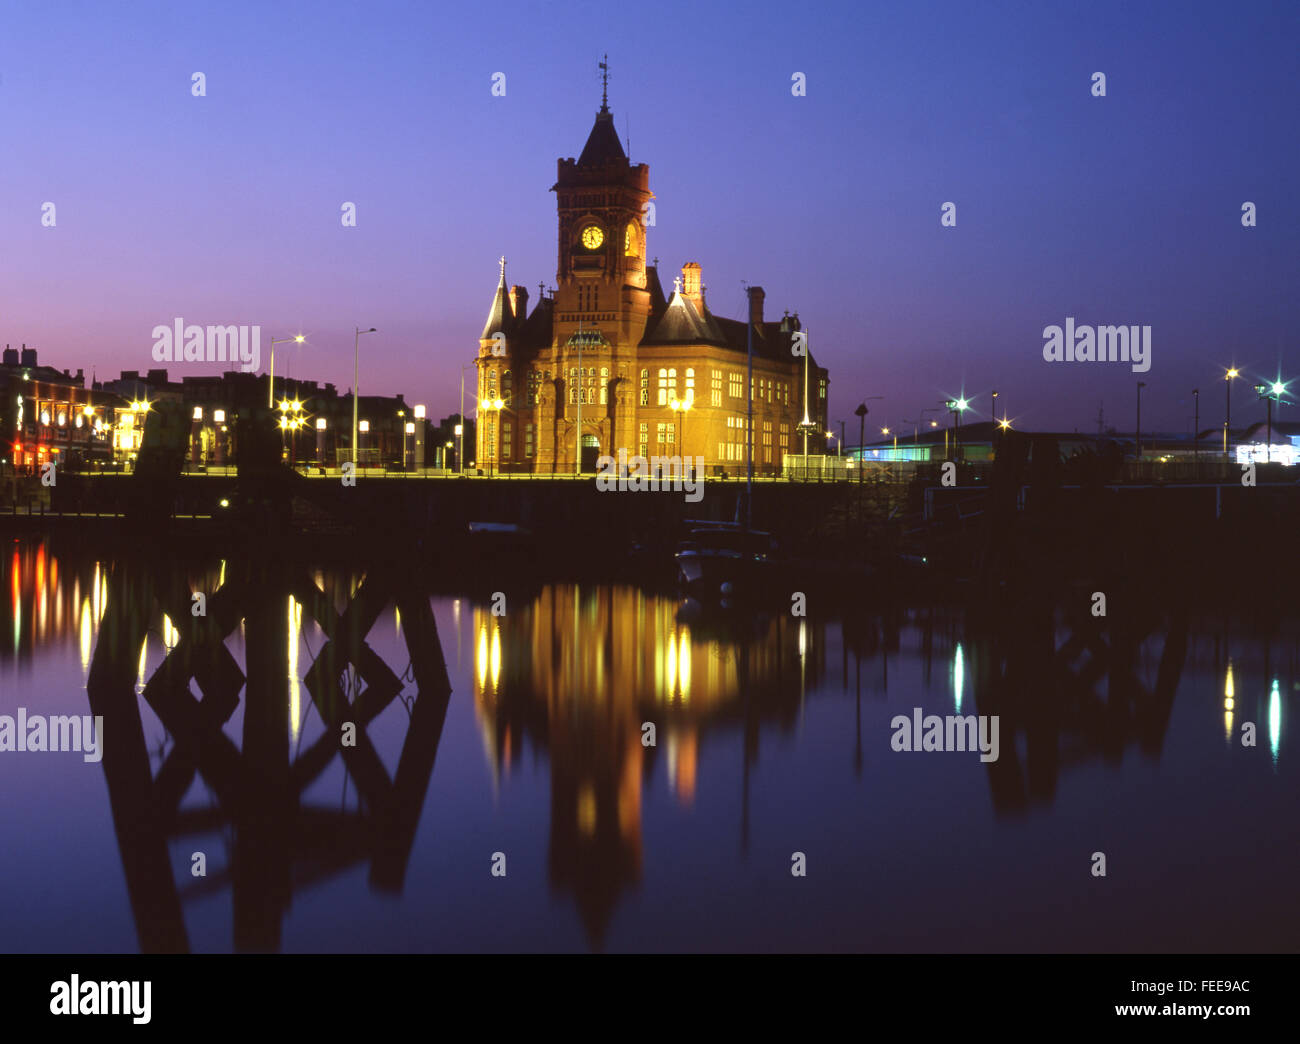 Bay skyline at night twilight dusk in 2001 before Millennium Centre and Senedd were built Cardiff Wales UK - Stock Image